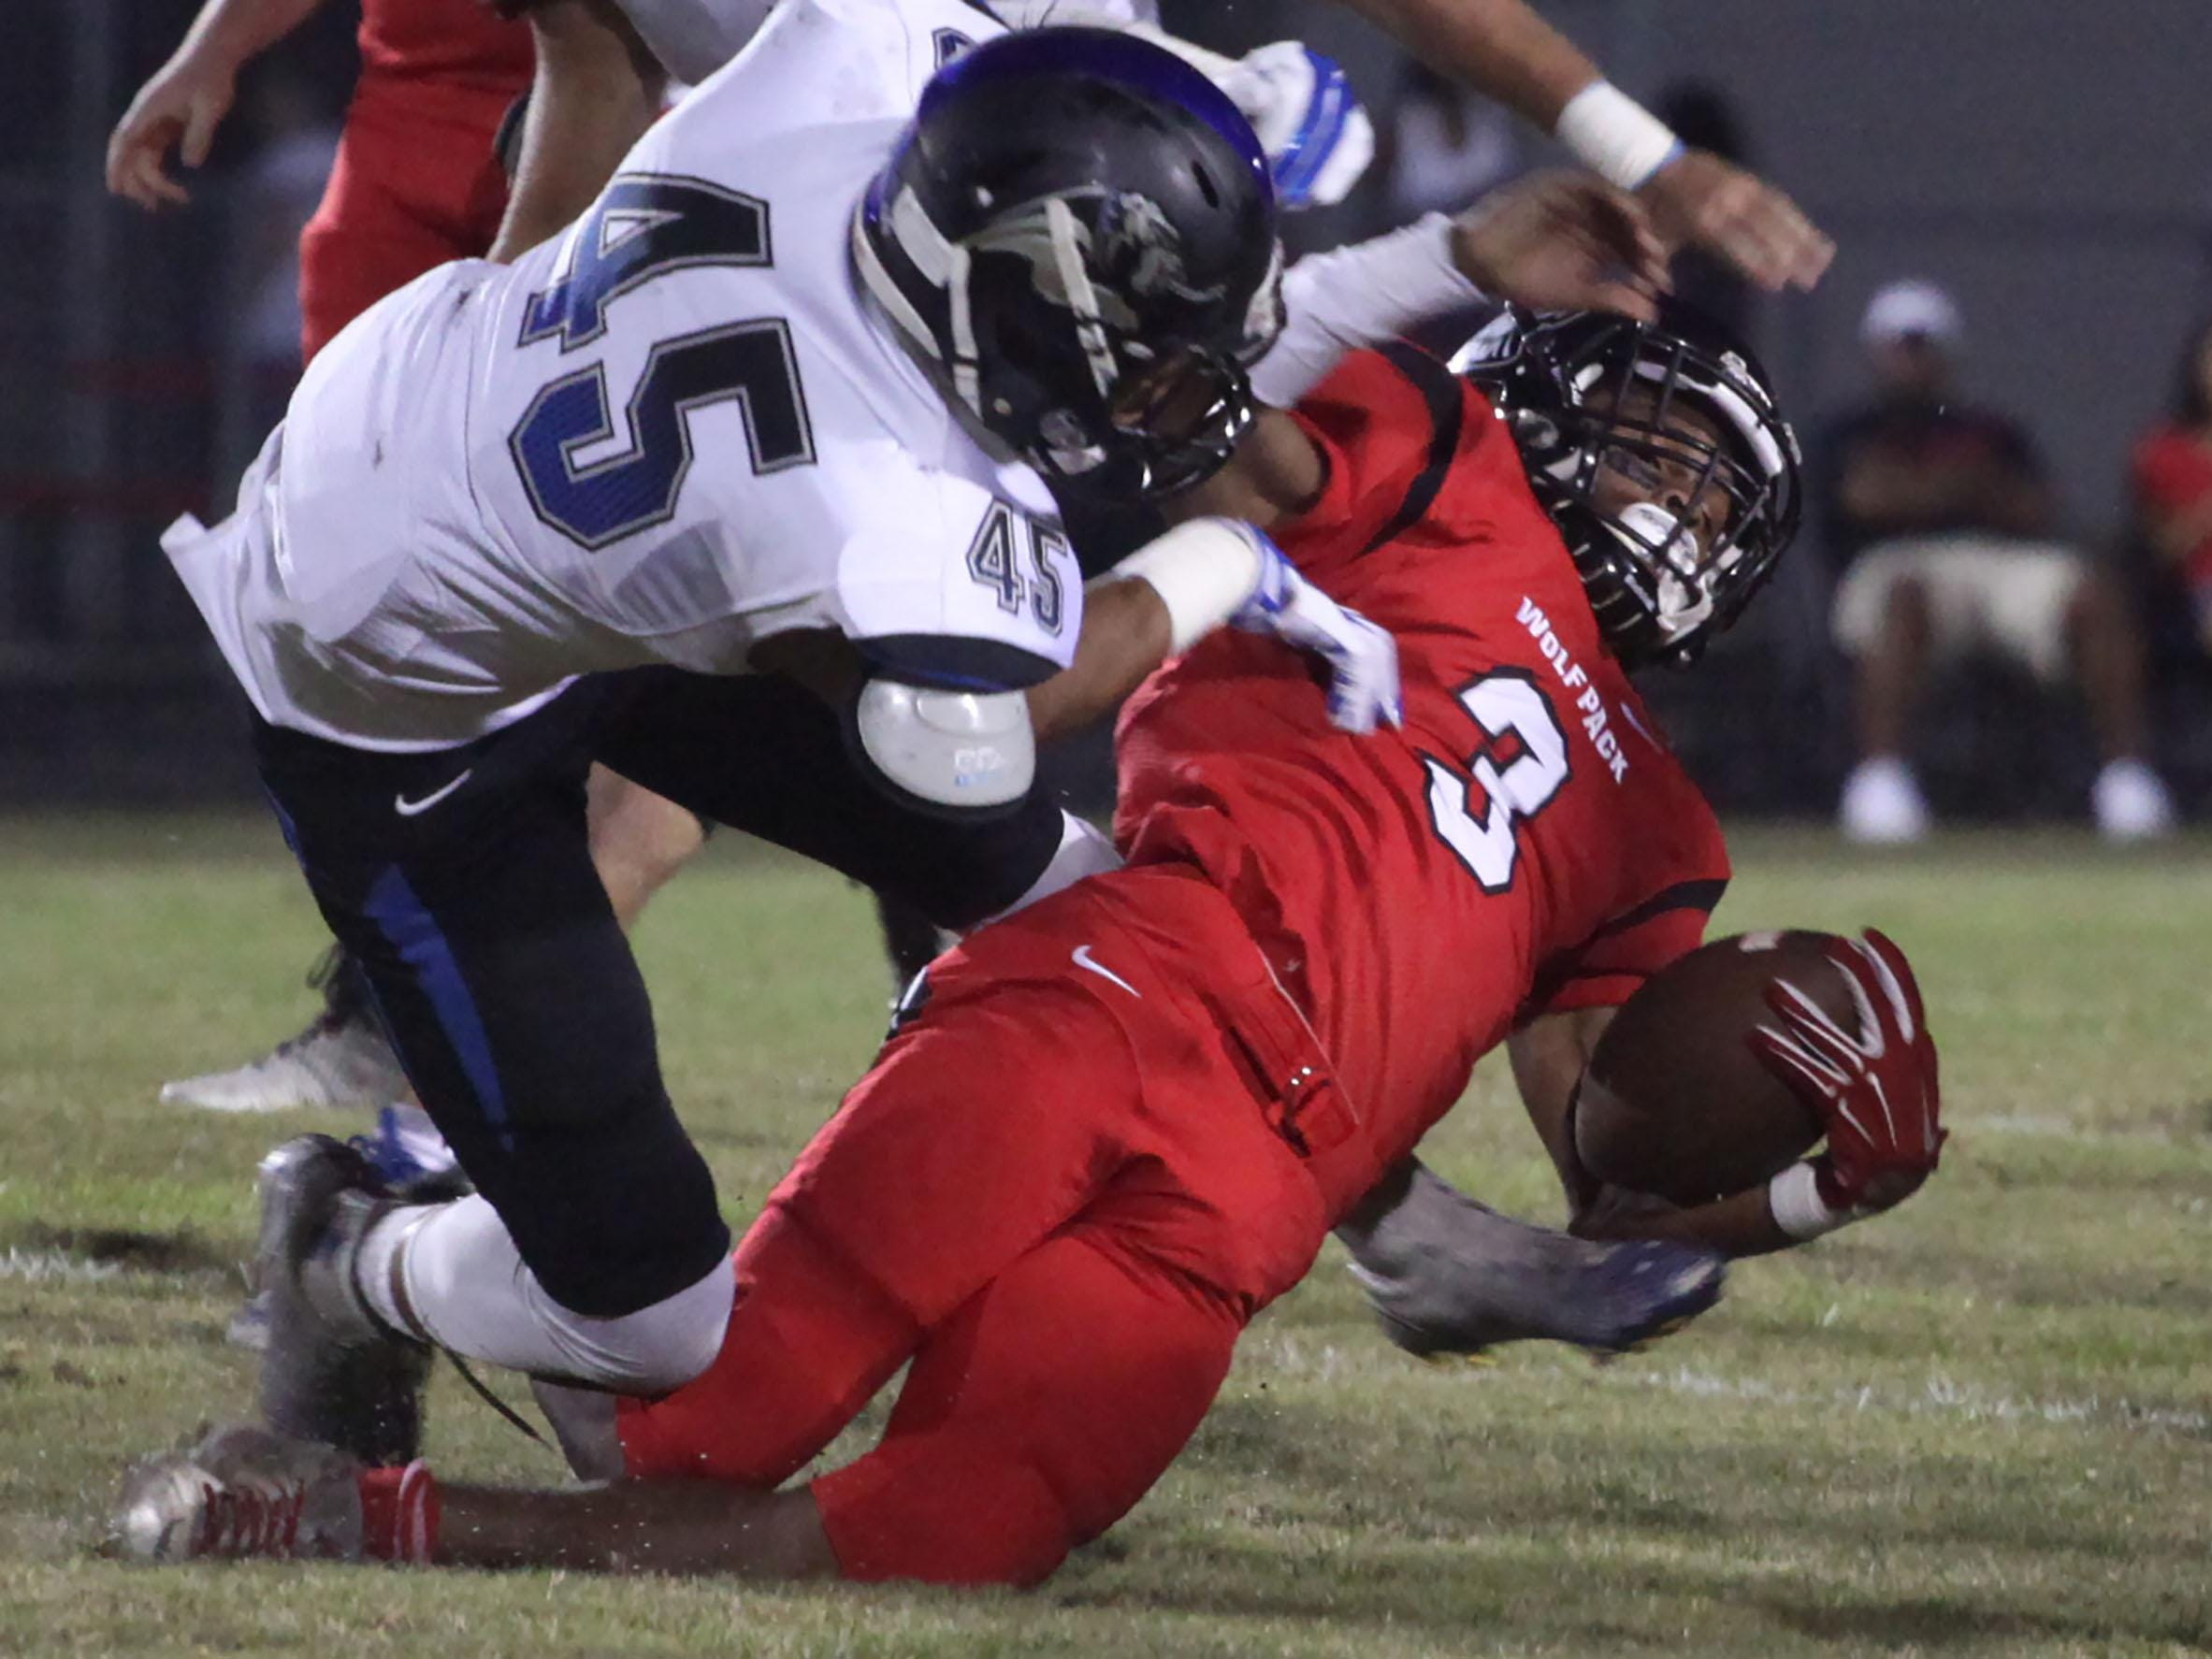 South Fort Myers' Ke'Shon Murray is tackled by Ida Baker's Robert Cobb during a game at South Fort Myers on Friday night.